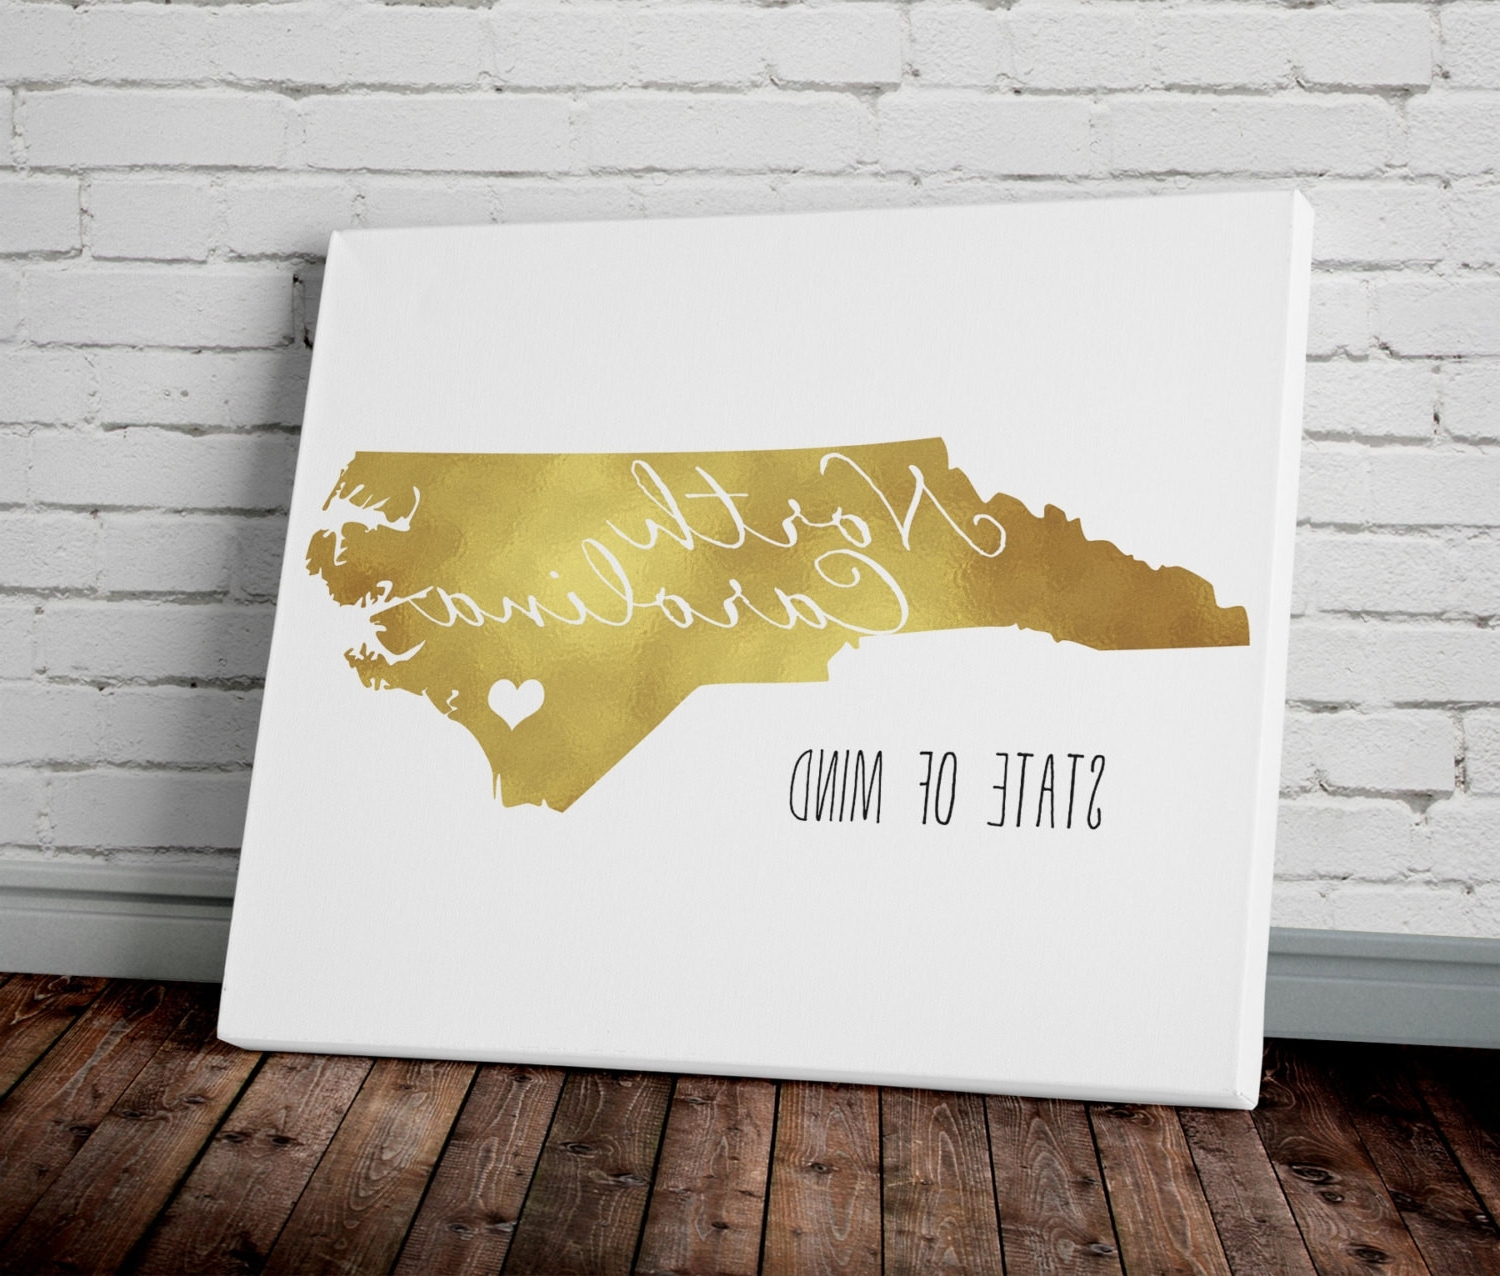 North Carolina Wall Art Pertaining To Latest North Carolina Wall Art – Arsmart (View 2 of 15)